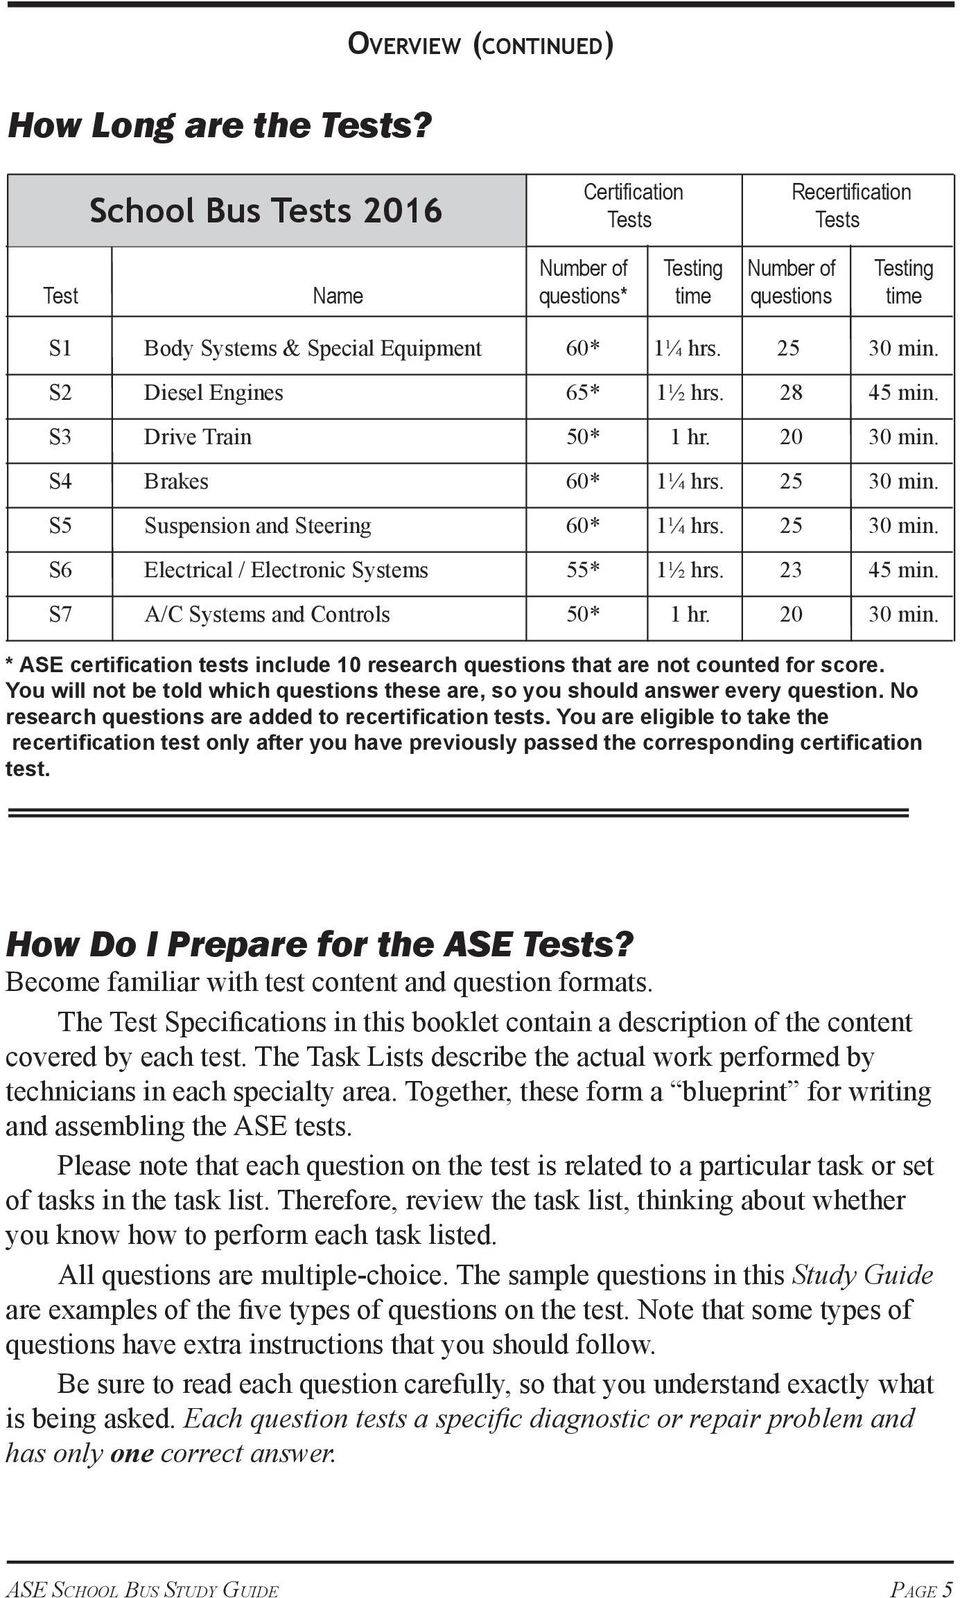 The Official Ase Study Guide Pdf